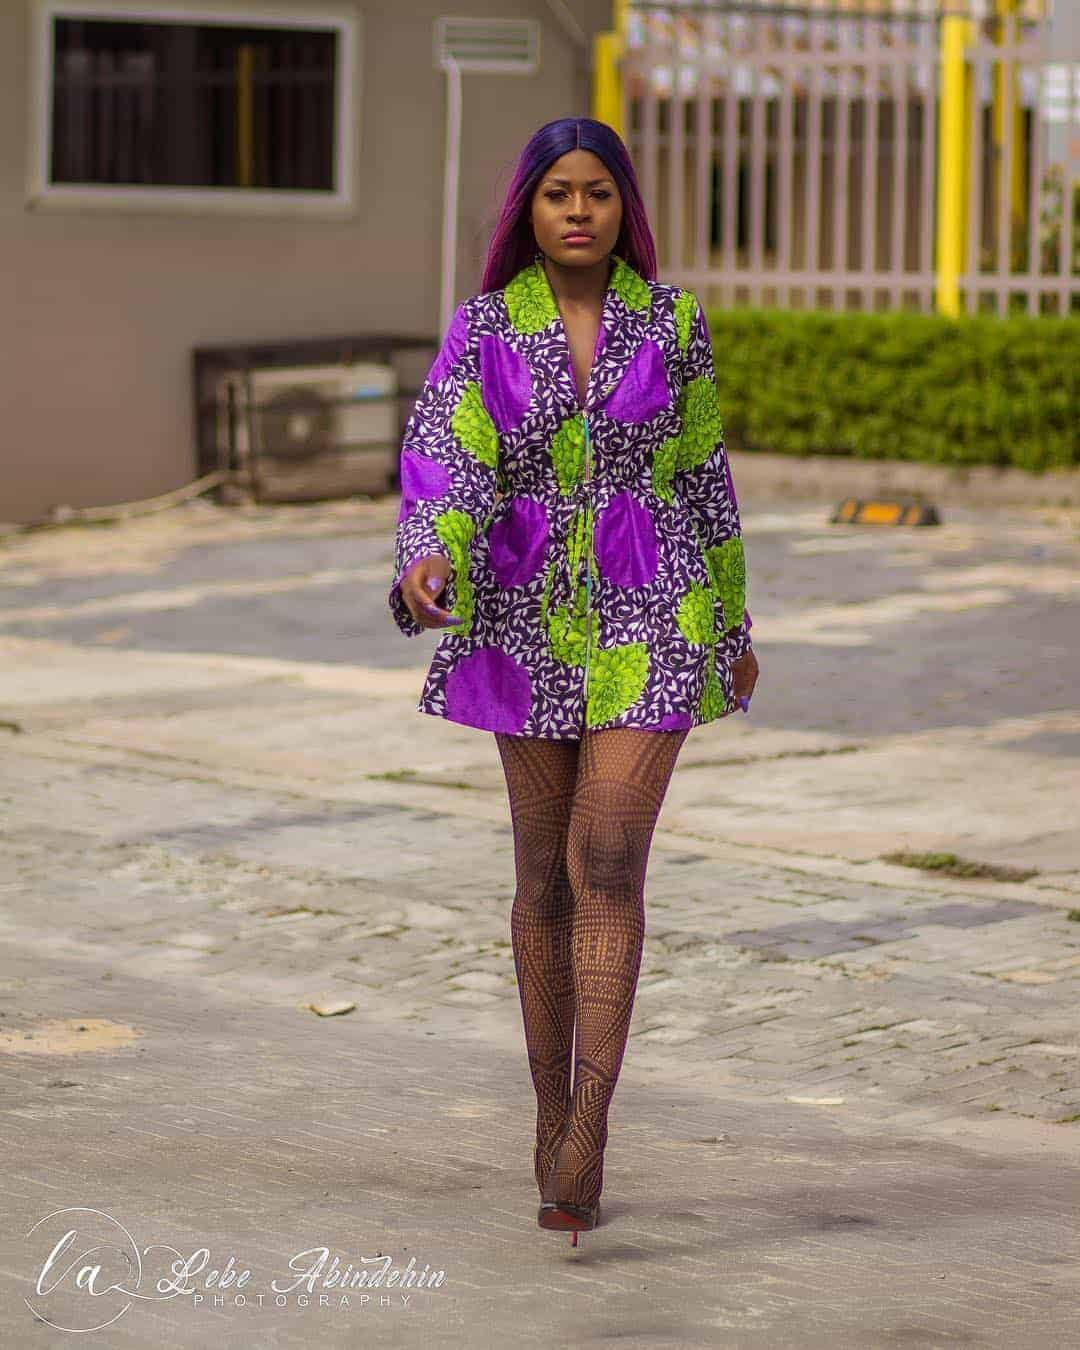 After Cee-C's revelation, Alex shares beautiful photos